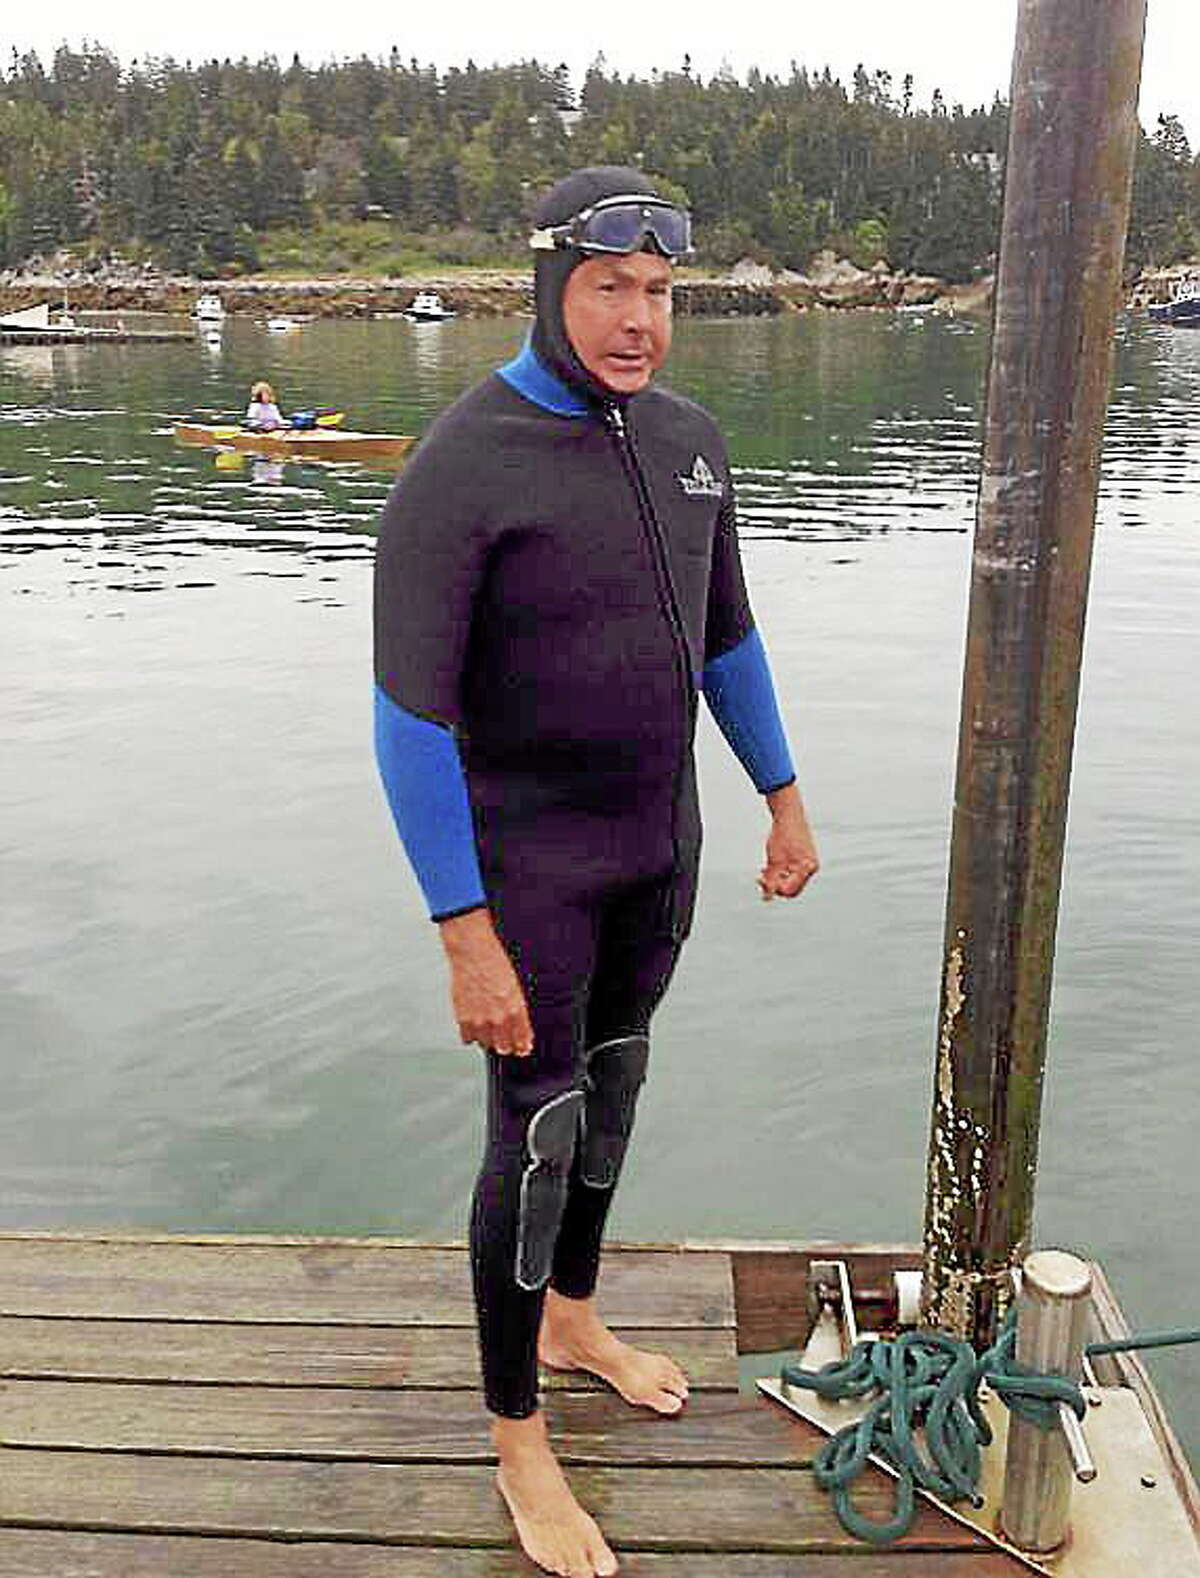 Fred Brooke swam the bone-chilling waters off the northernmost coast of Maine in July this summer.